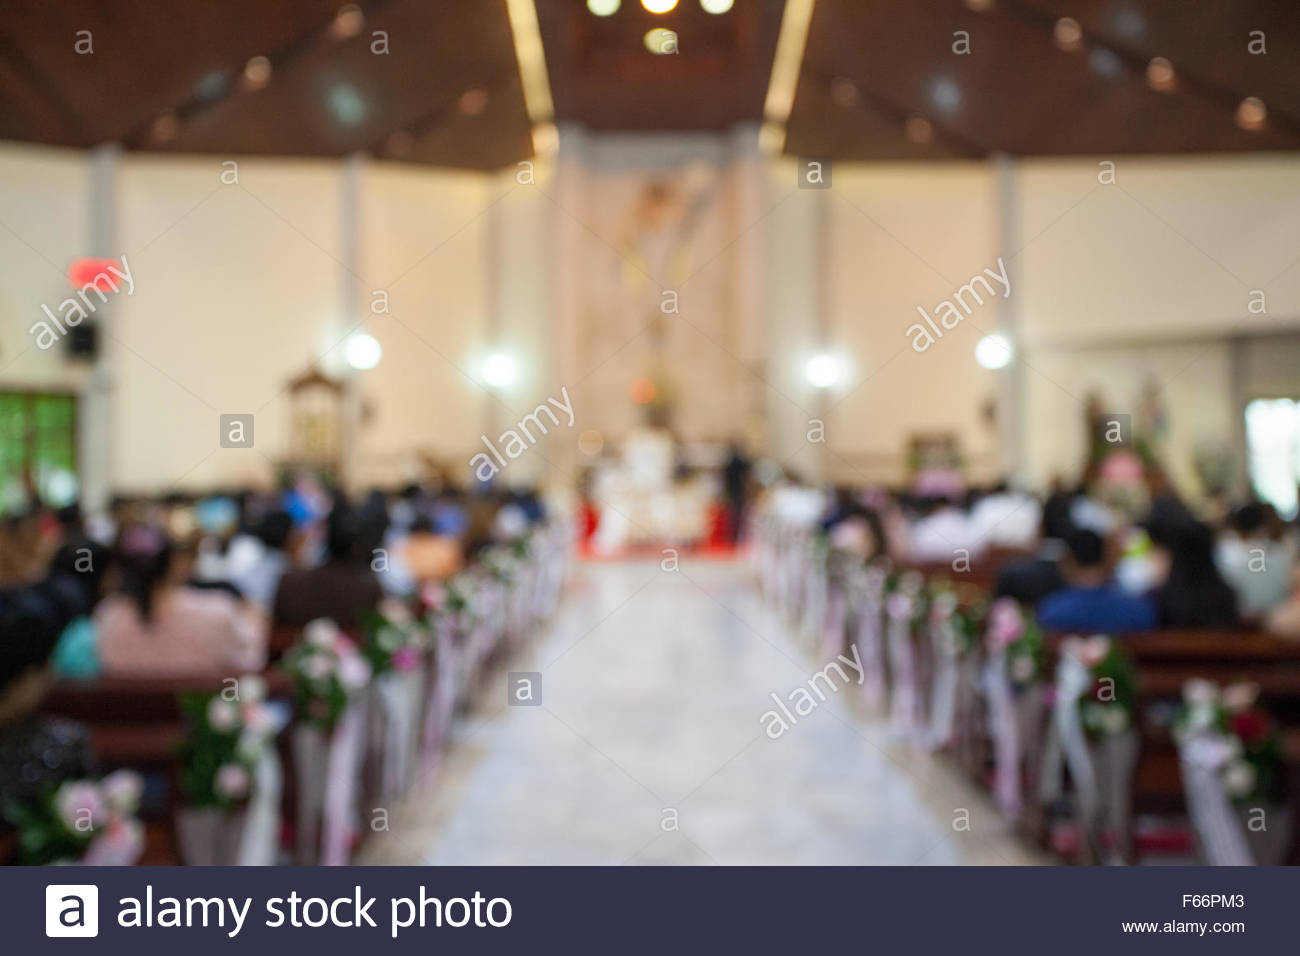 image of blur wedding in church background usage. - Stock Image